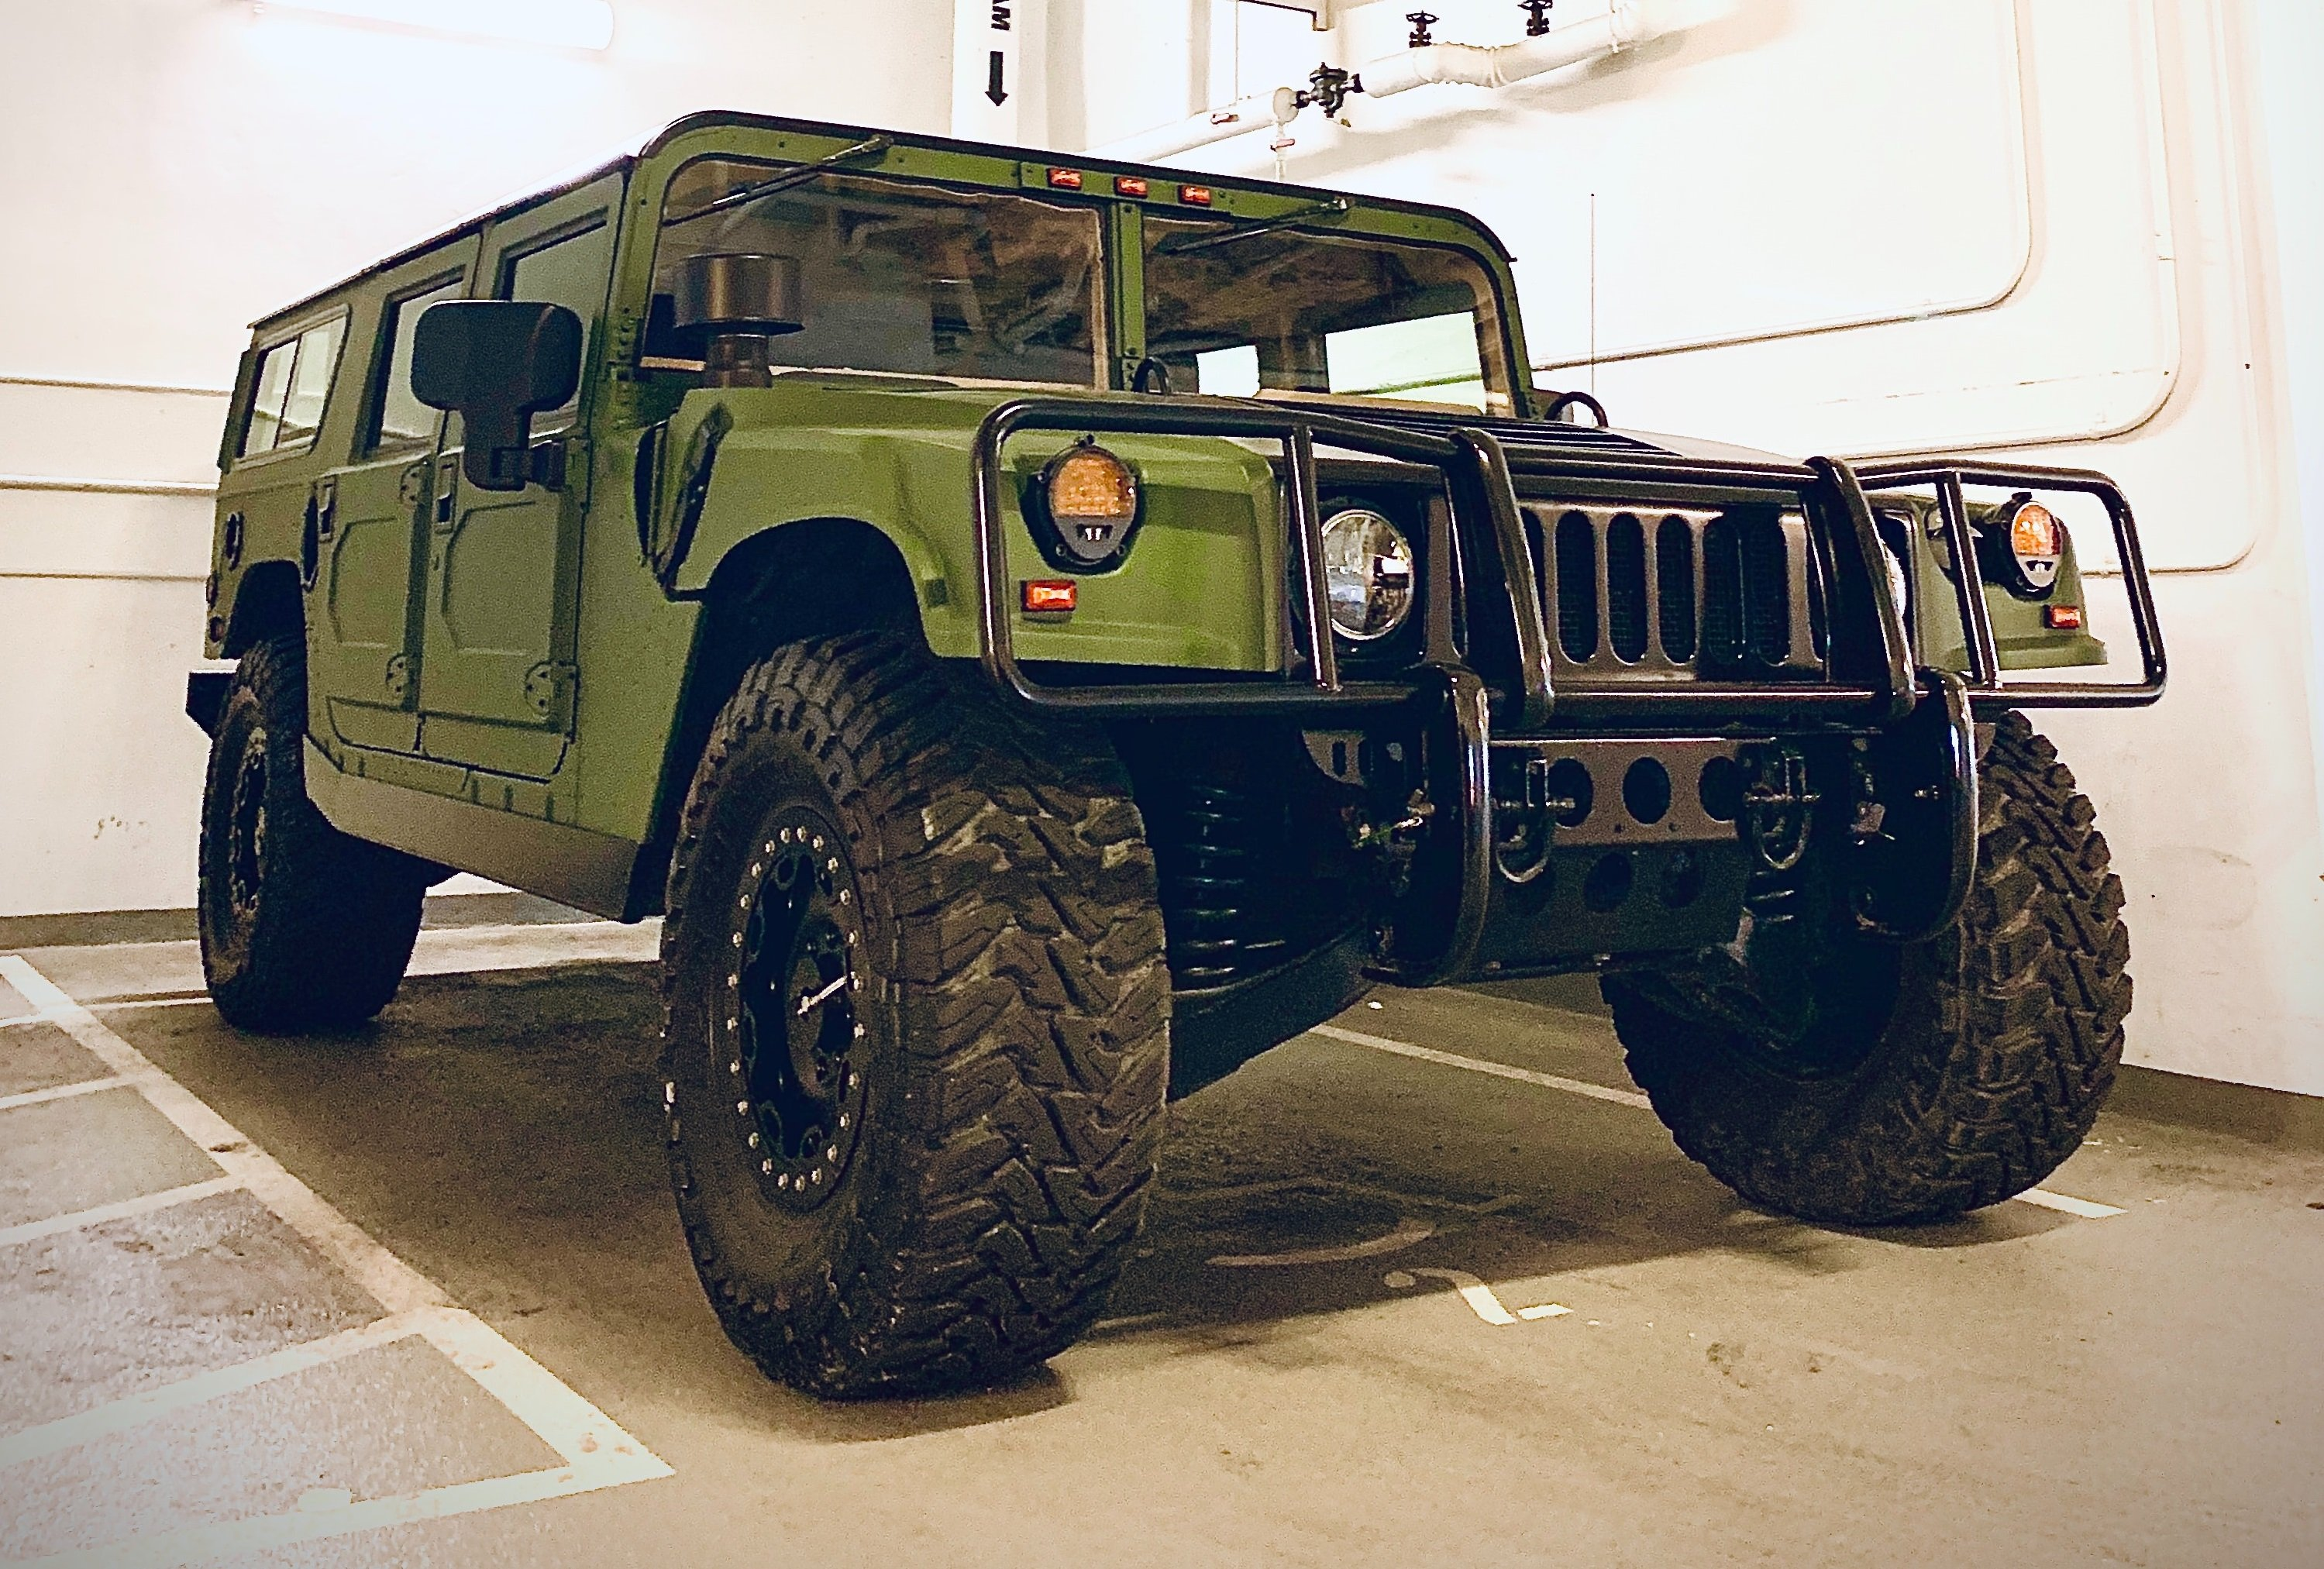 What is a Humvee and what does it do?